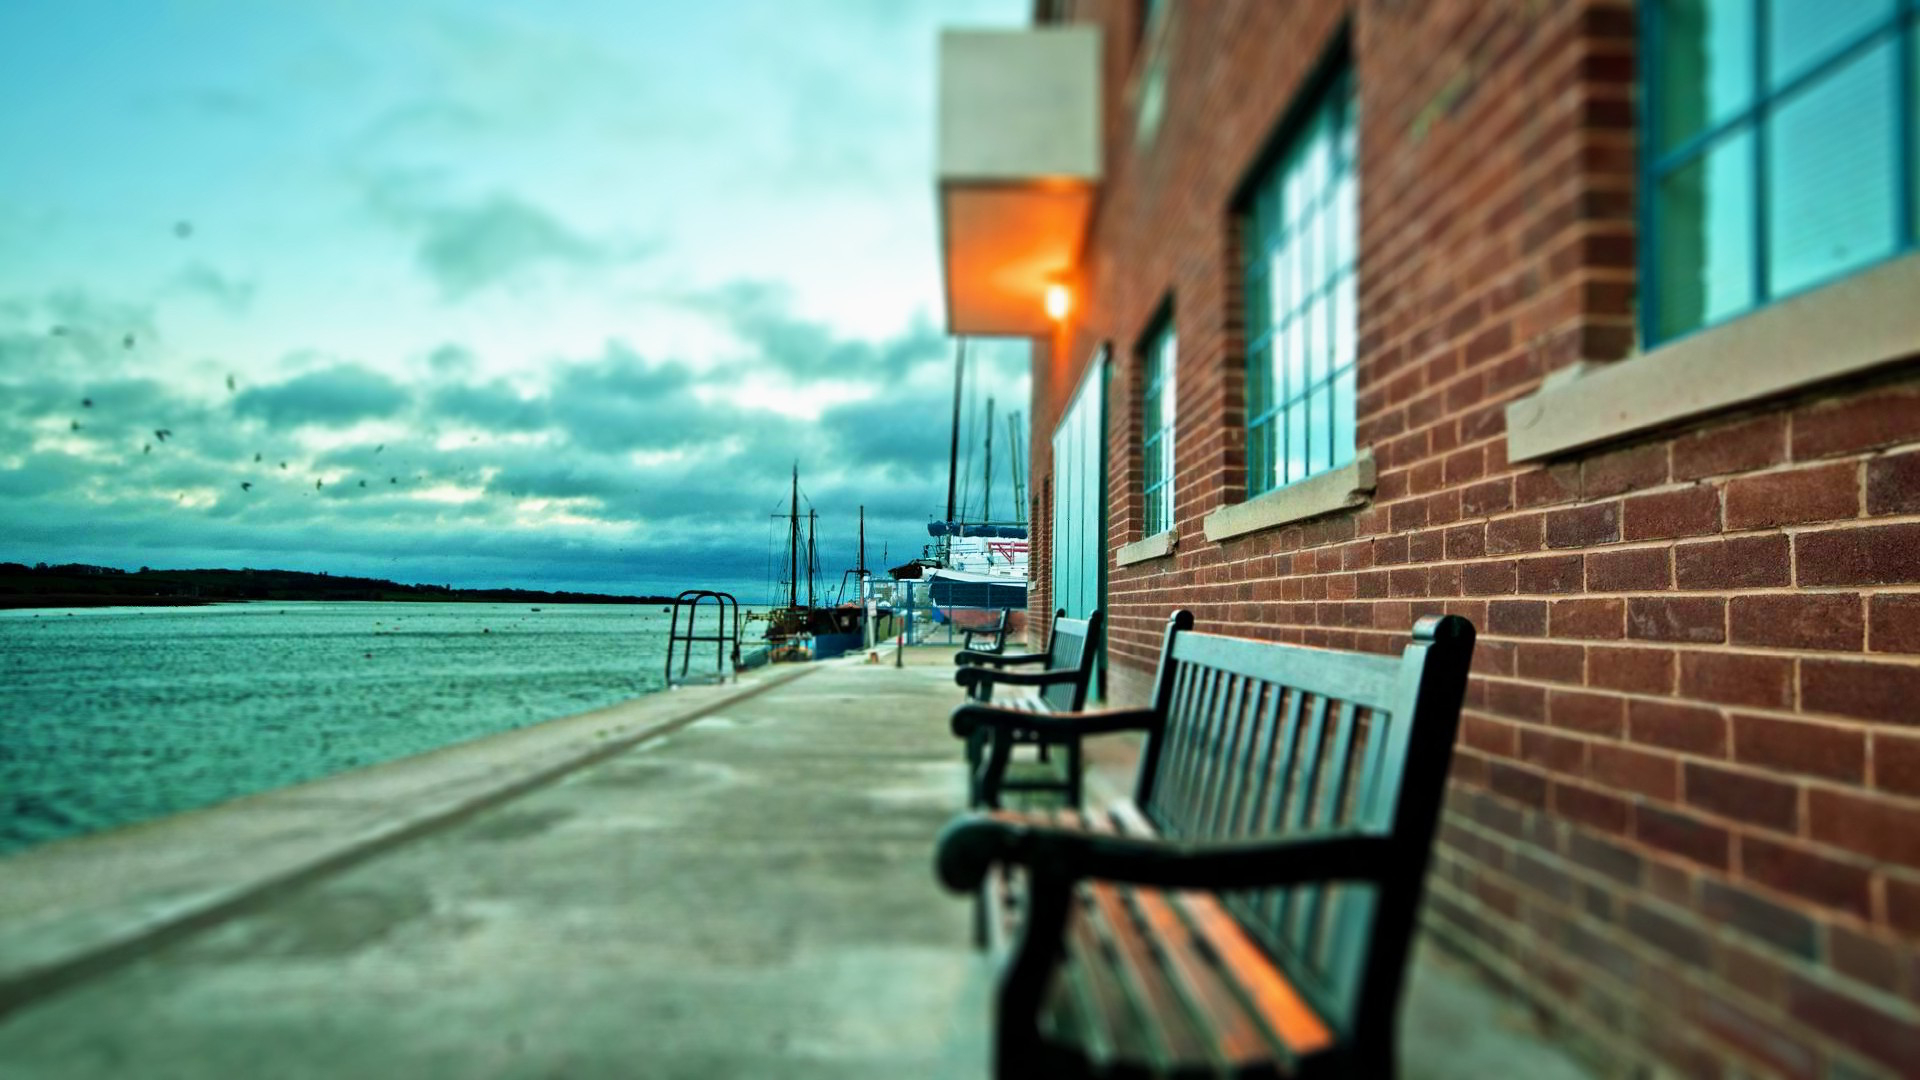 Benches ships dock